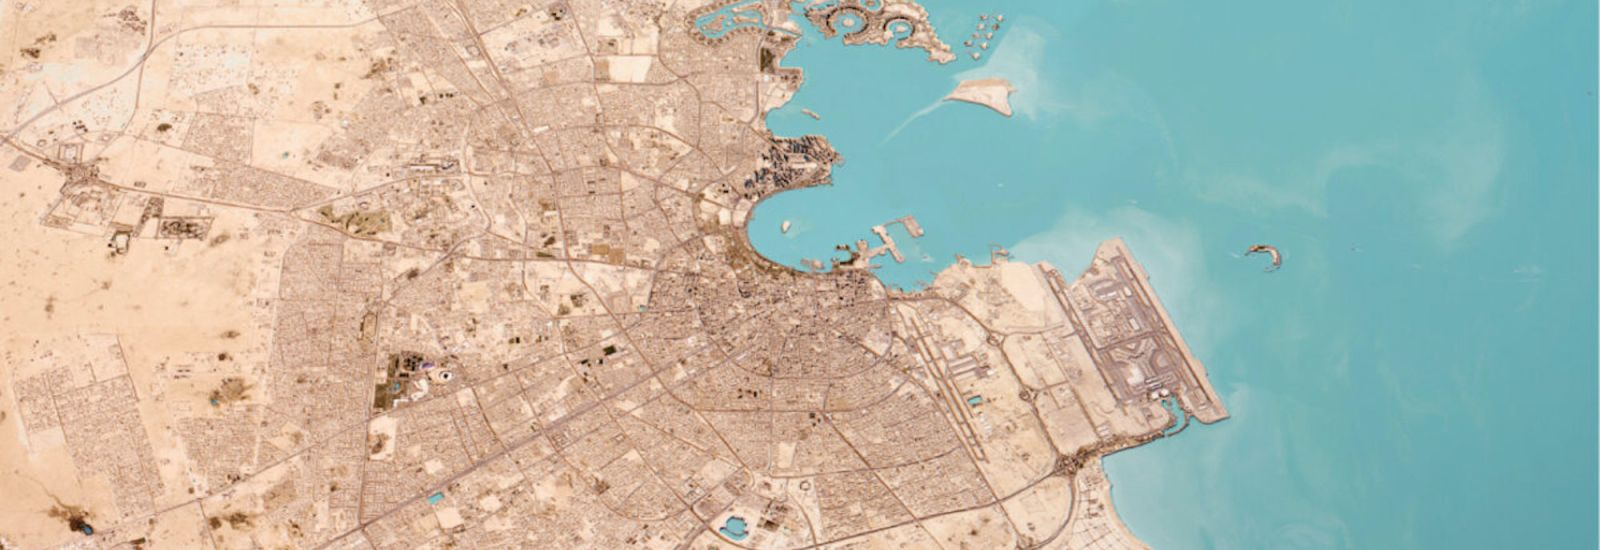 Aerial view of Doha, showing roadways and port